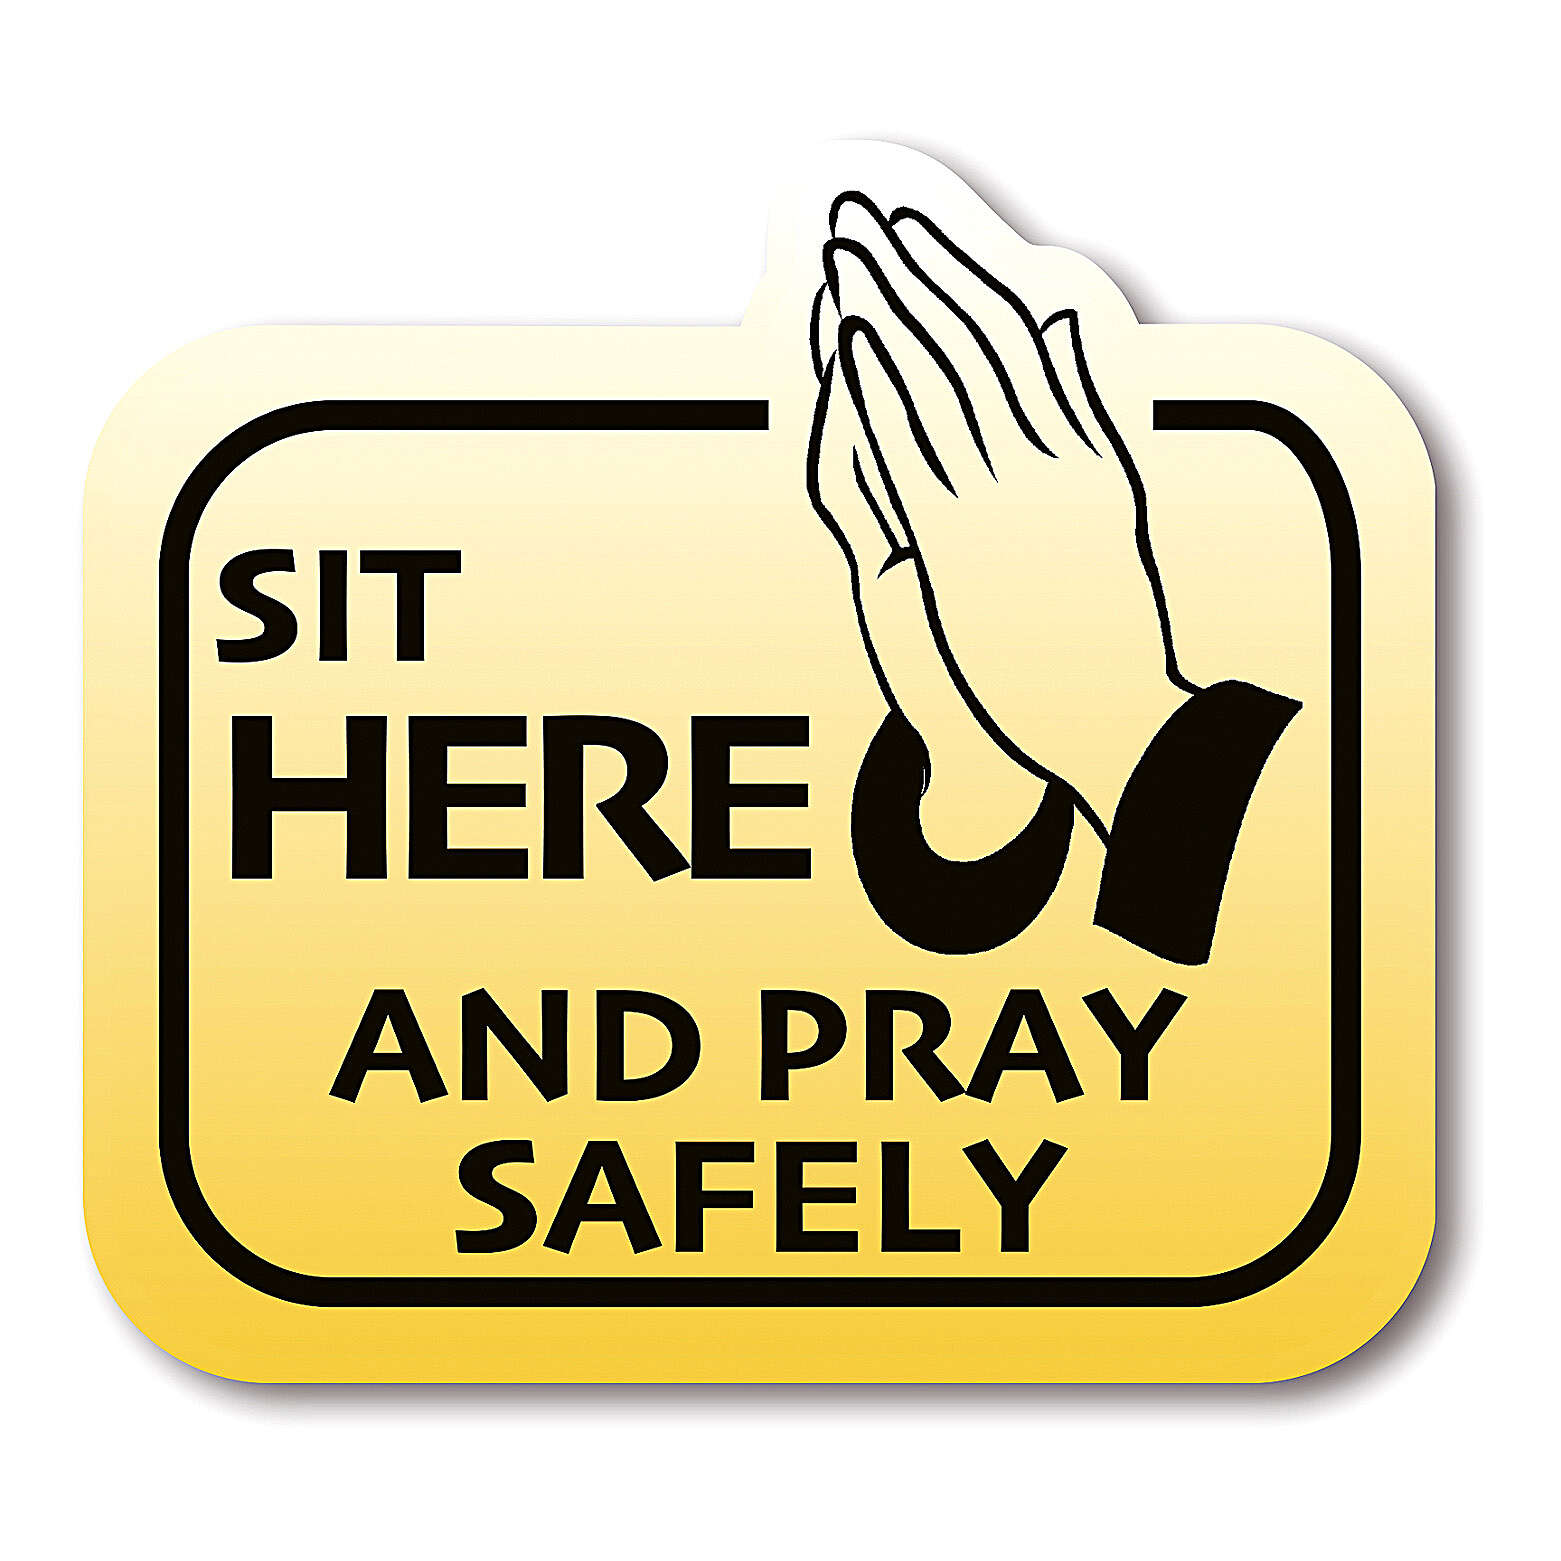 Removable stickers 8 PIECES - SIT HERE AND PRAY SAFELY 3